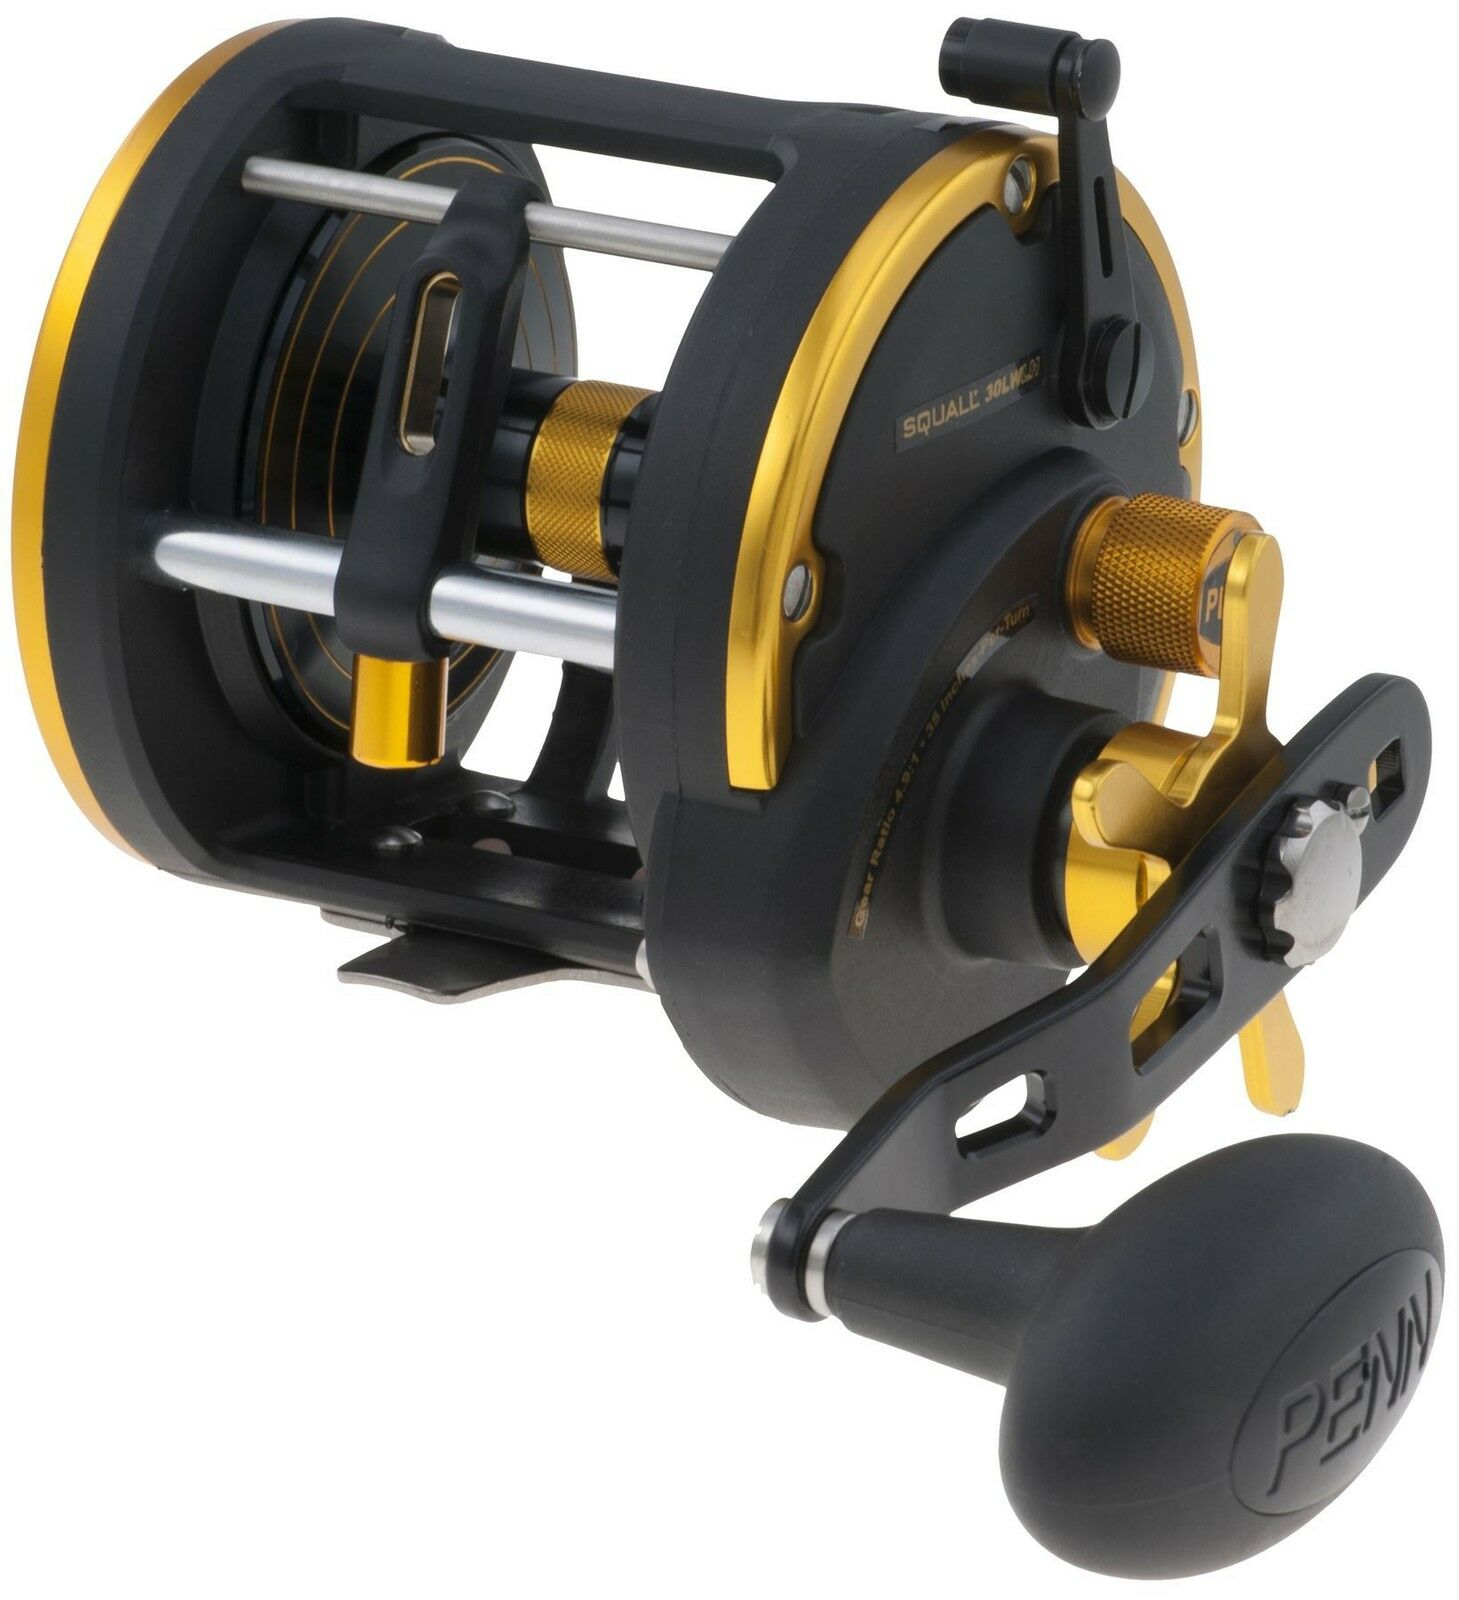 Penn Squall  30 Levelwind Left Hand   Sea Fishing Reel   1292944  quick answers